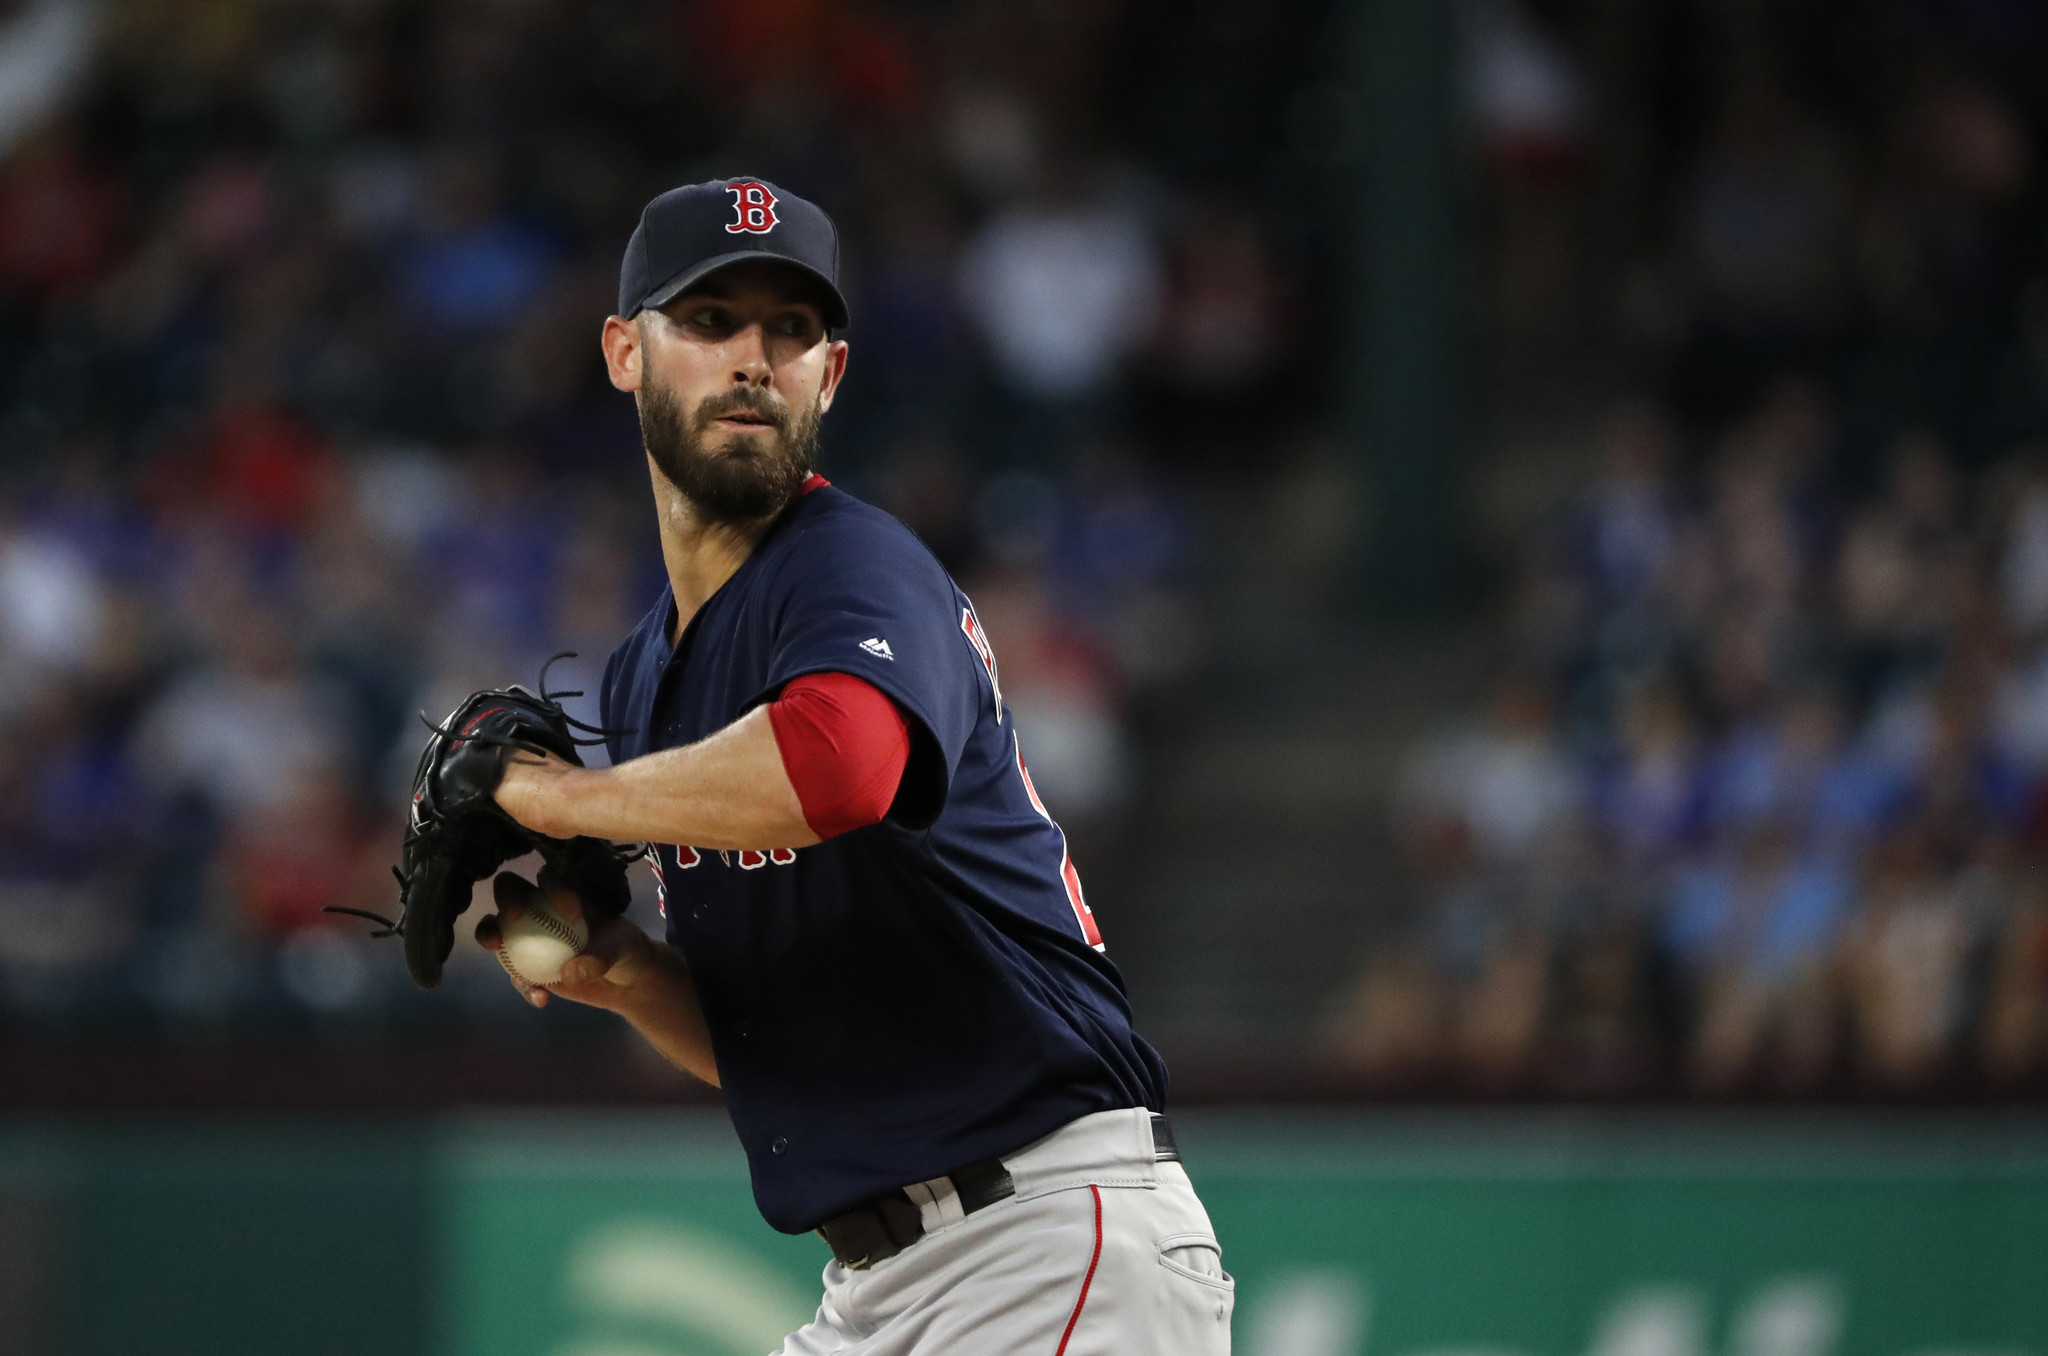 Rick Porcello agrees to one-year, $10 million deal with Mets: reports